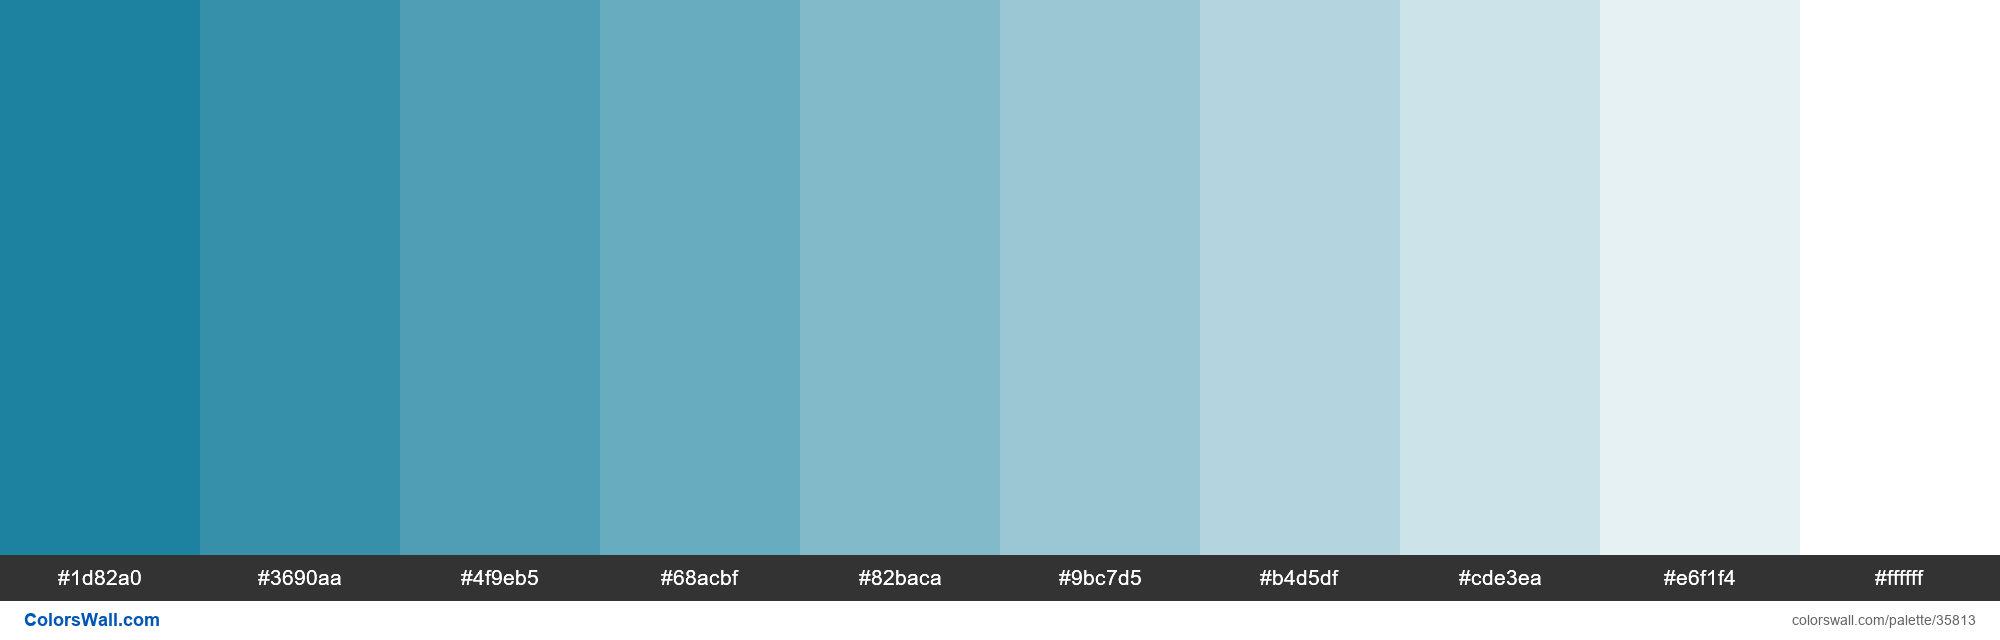 Tints XKCD Color sea blue #047495 hex - #35813